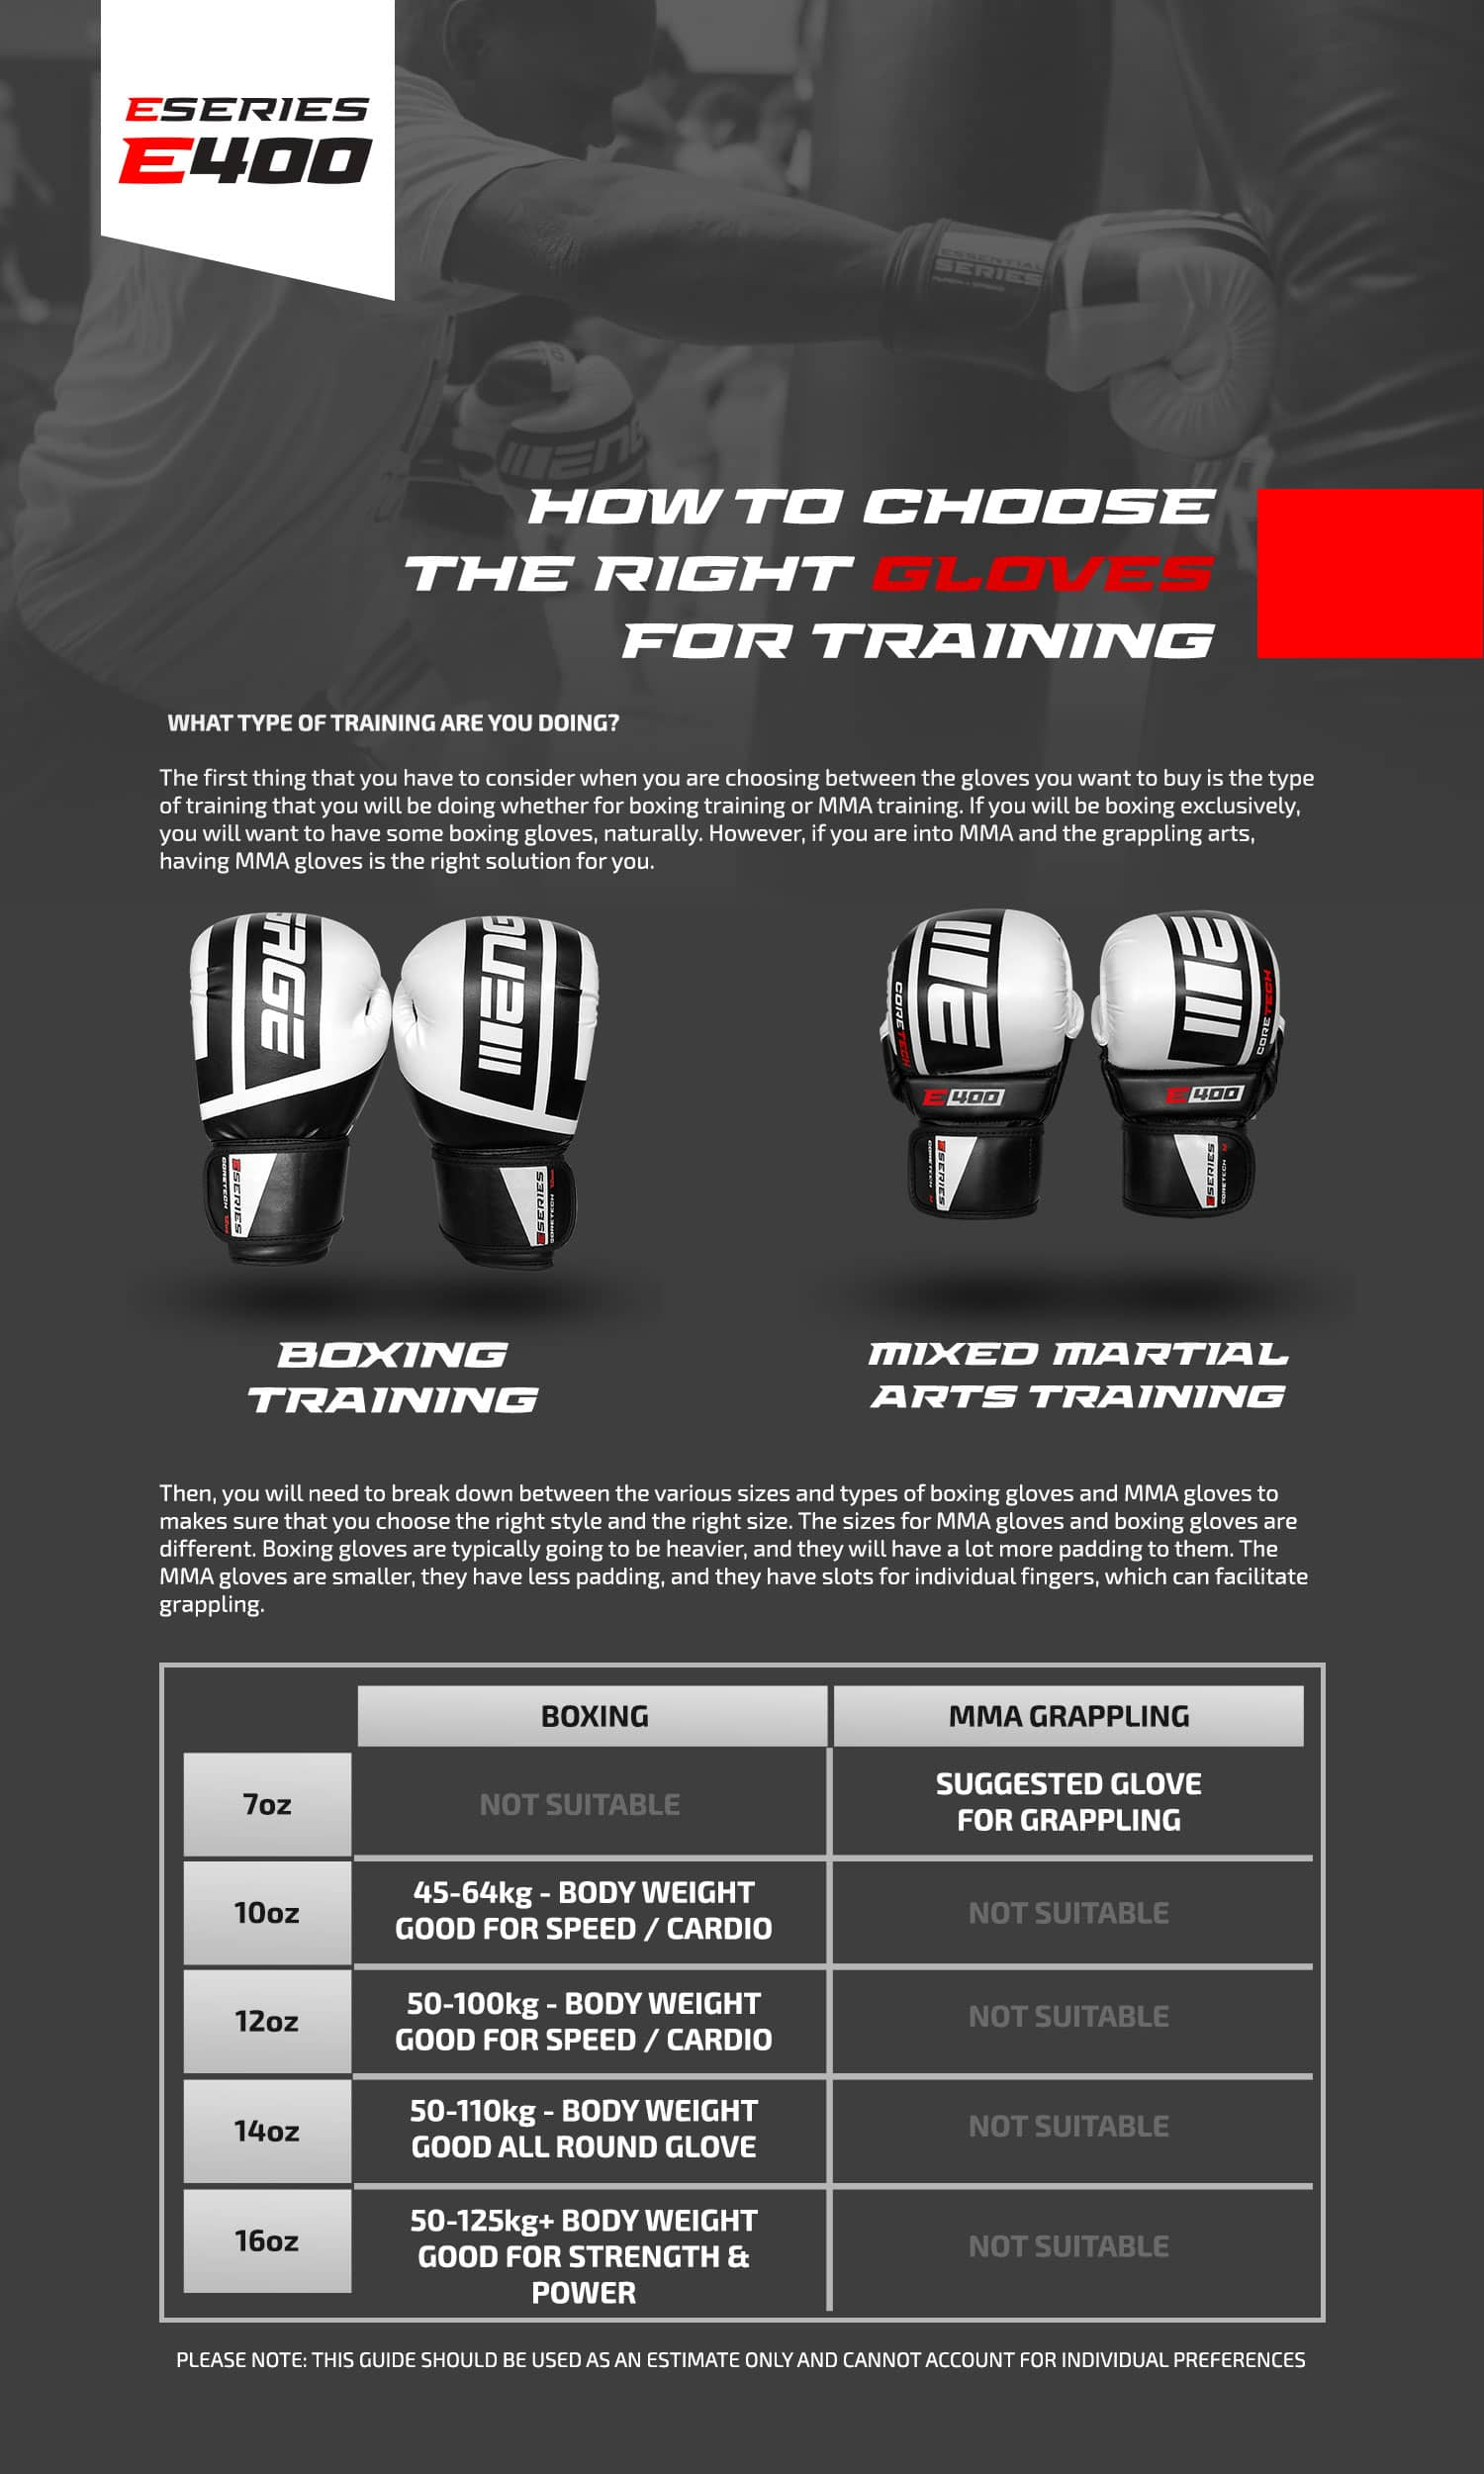 How To Choose The Right Gloves For Training Infographic - Engageind